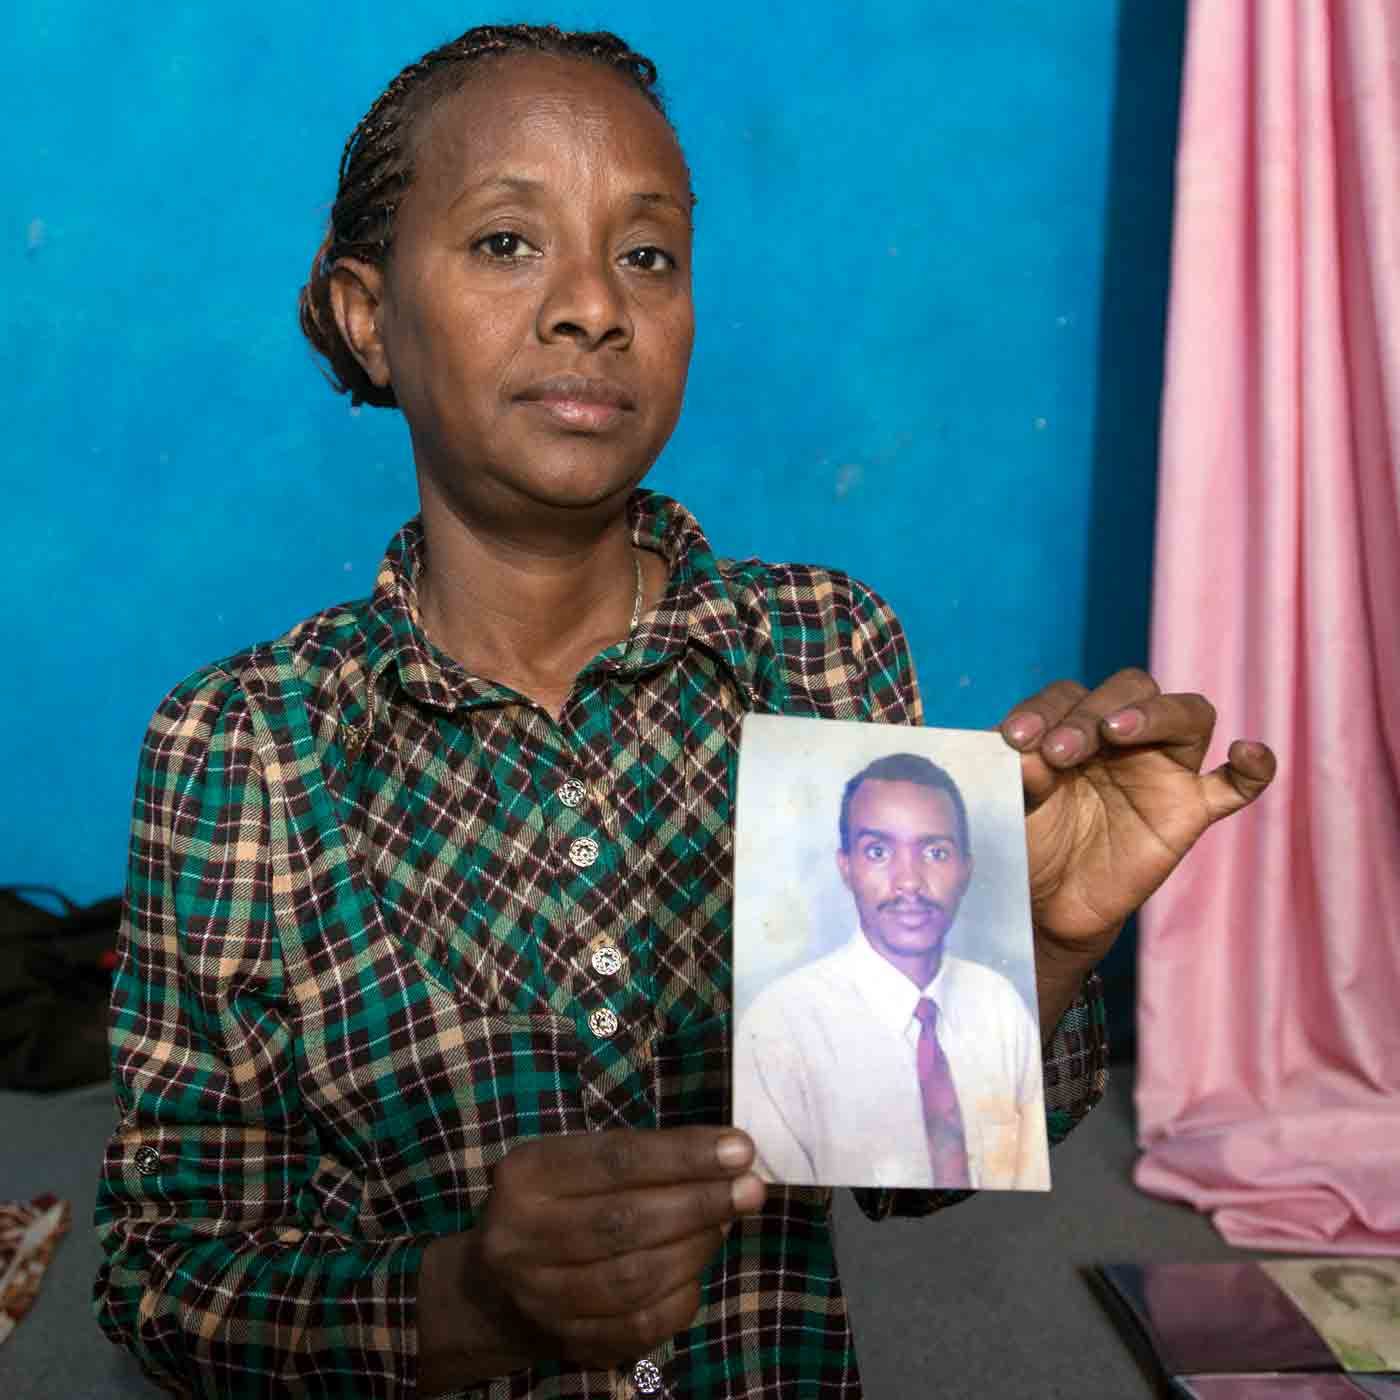 Mulu was arrested while attending a secret church meeting. Her husband died in prison.